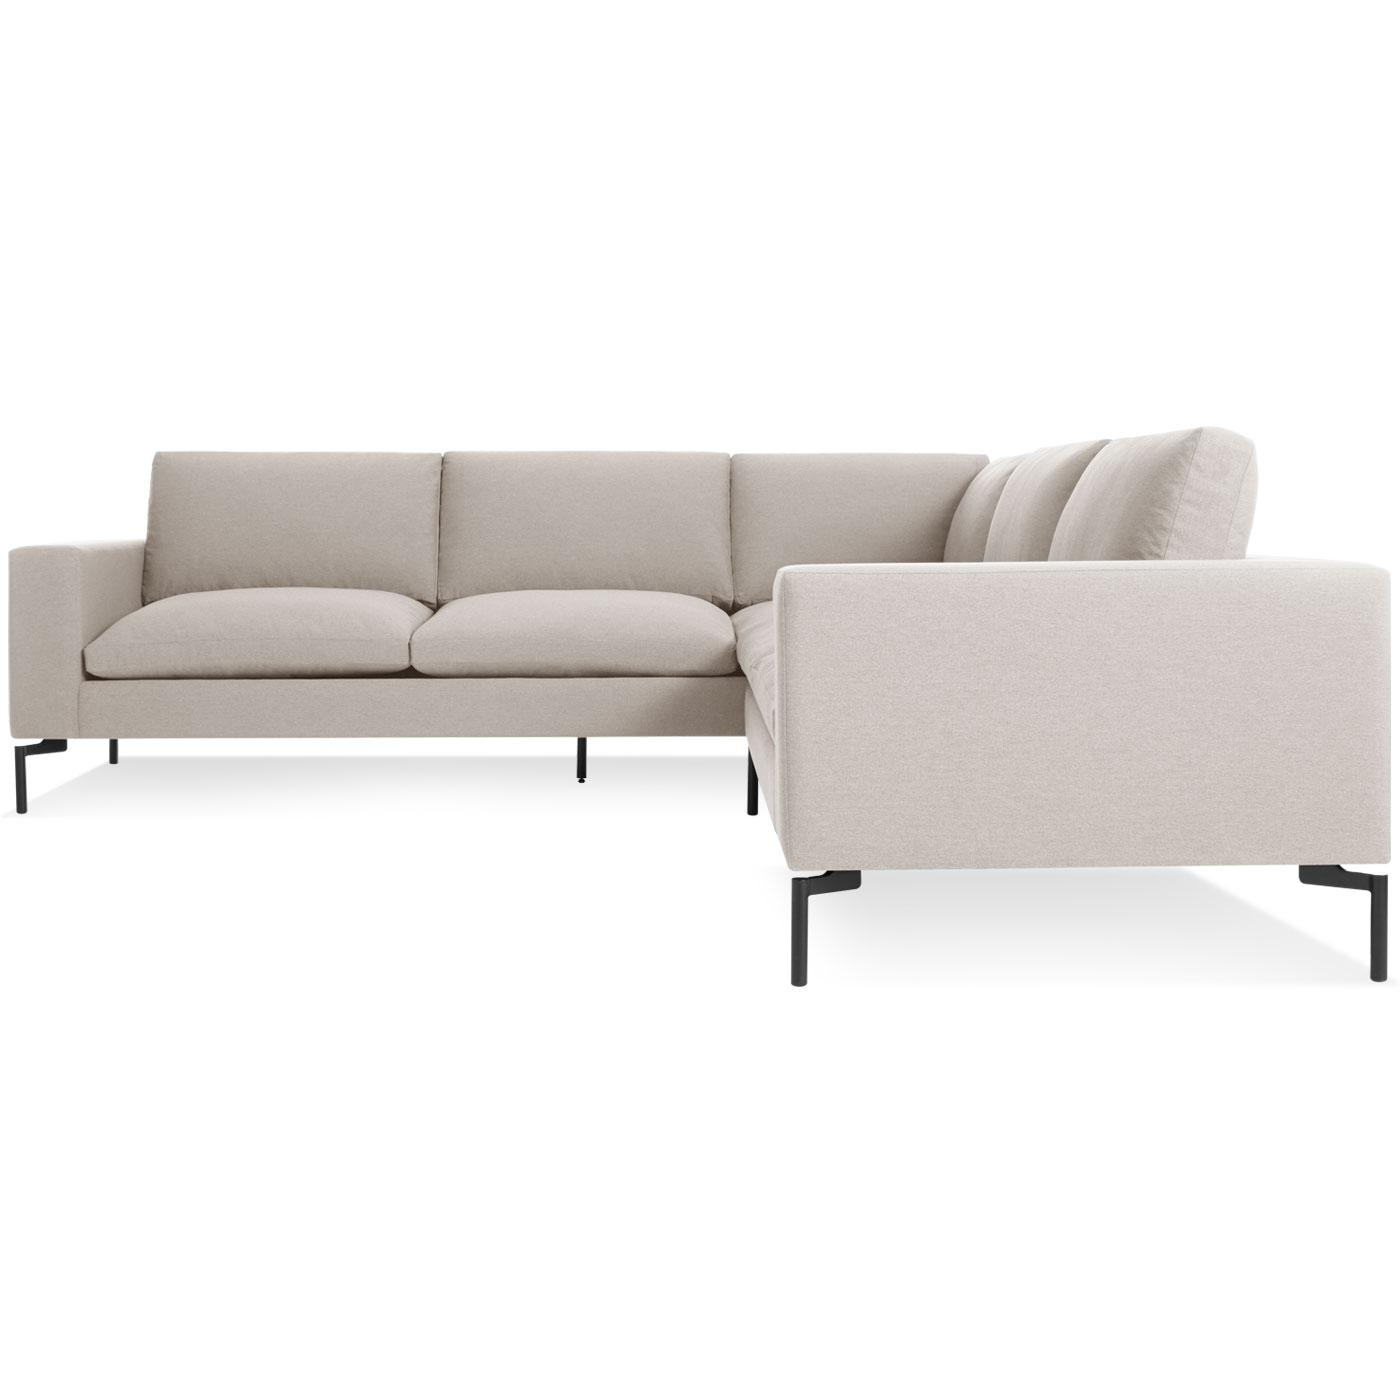 New Standard Small Sectional Sofa - Modern Sofas | Blu Dot pertaining to Small Modern Sofas